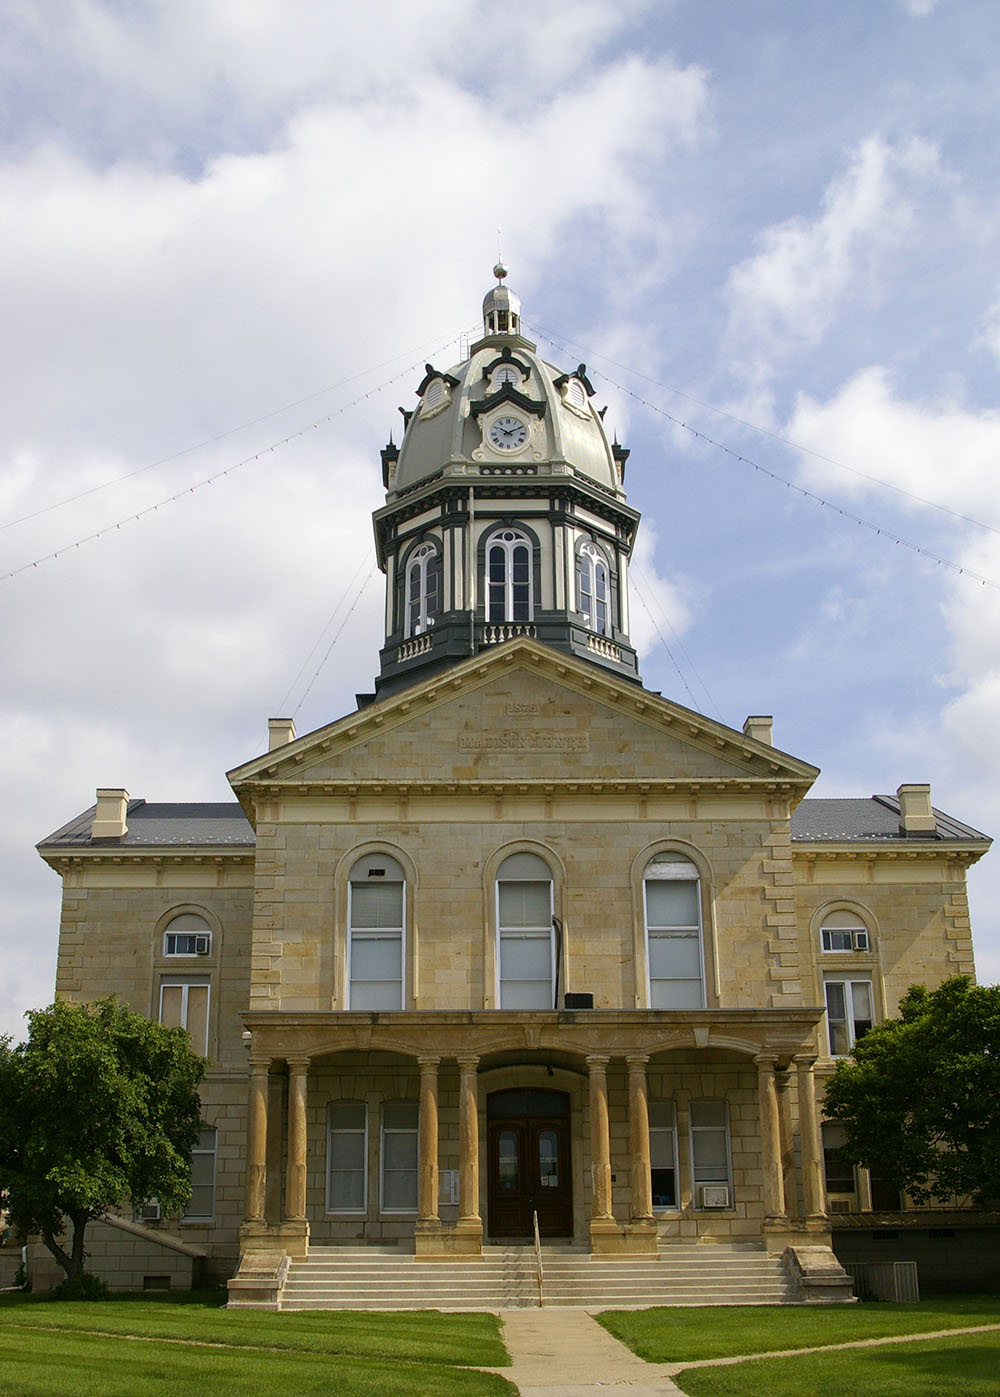 Limestone building exterior with white and navy bell tower of the Madison County Courthouse in Winterset, Iowa